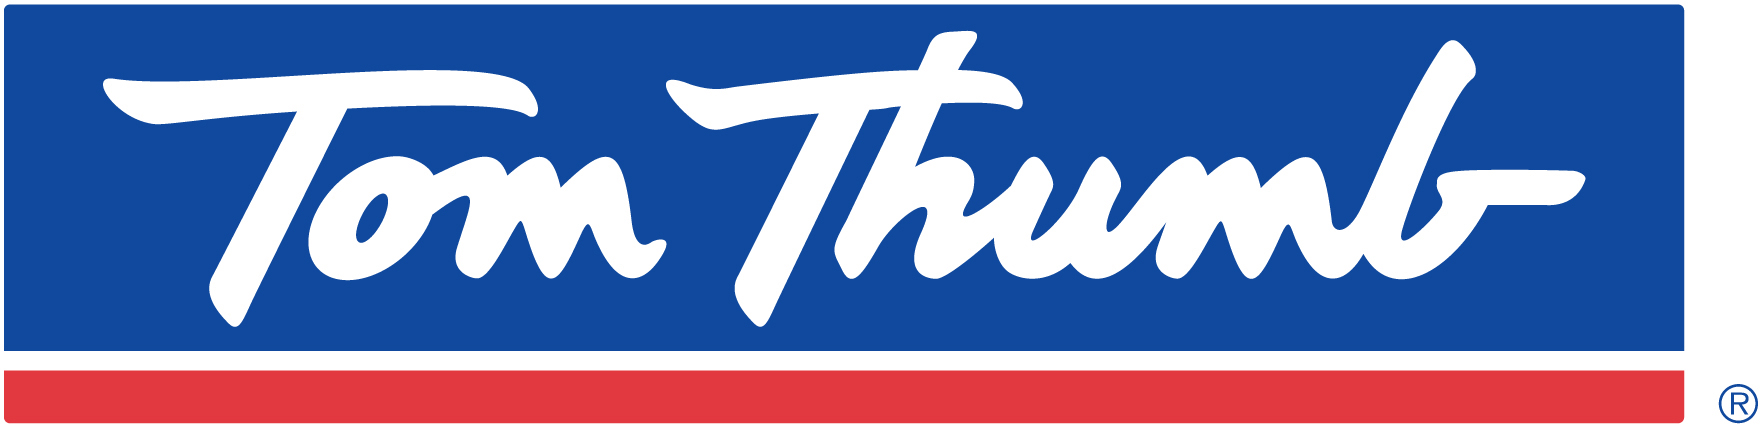 Tom Thumb Pharmacy Discount Prescription Drug Card